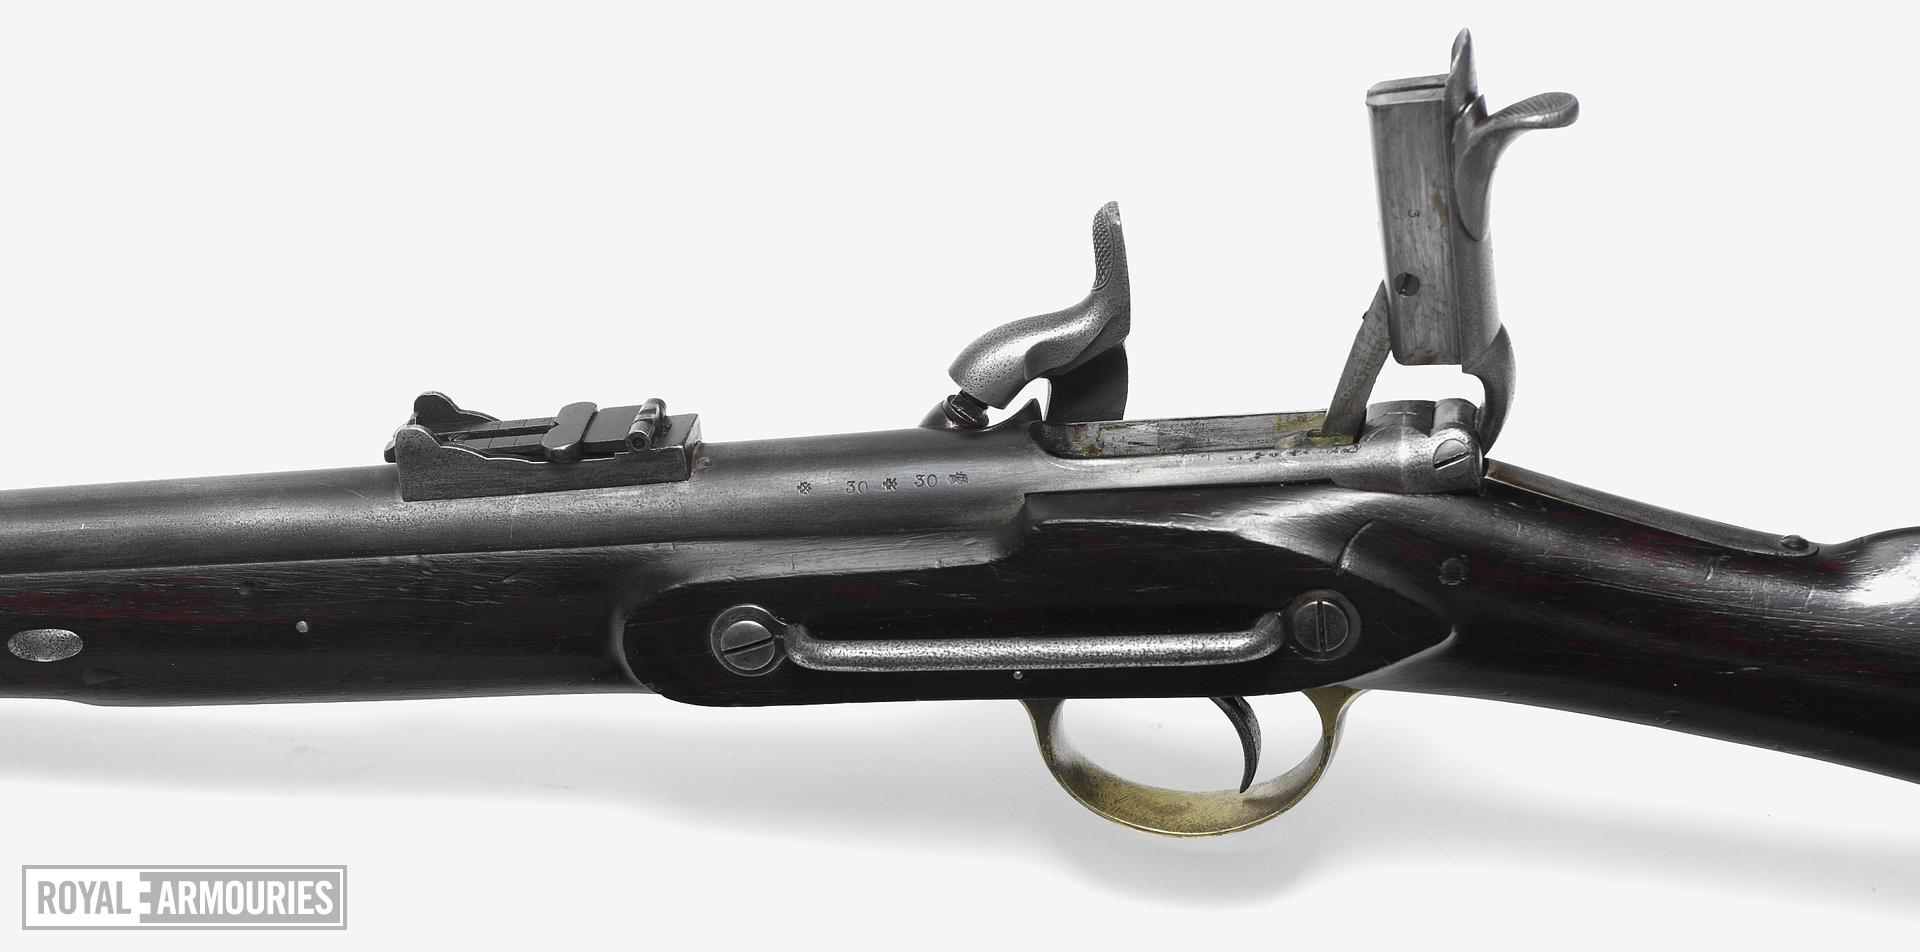 Percussion breech-loading carbine - J. R. Cooper's System Siddons Patent, backsight of Enfield pattern